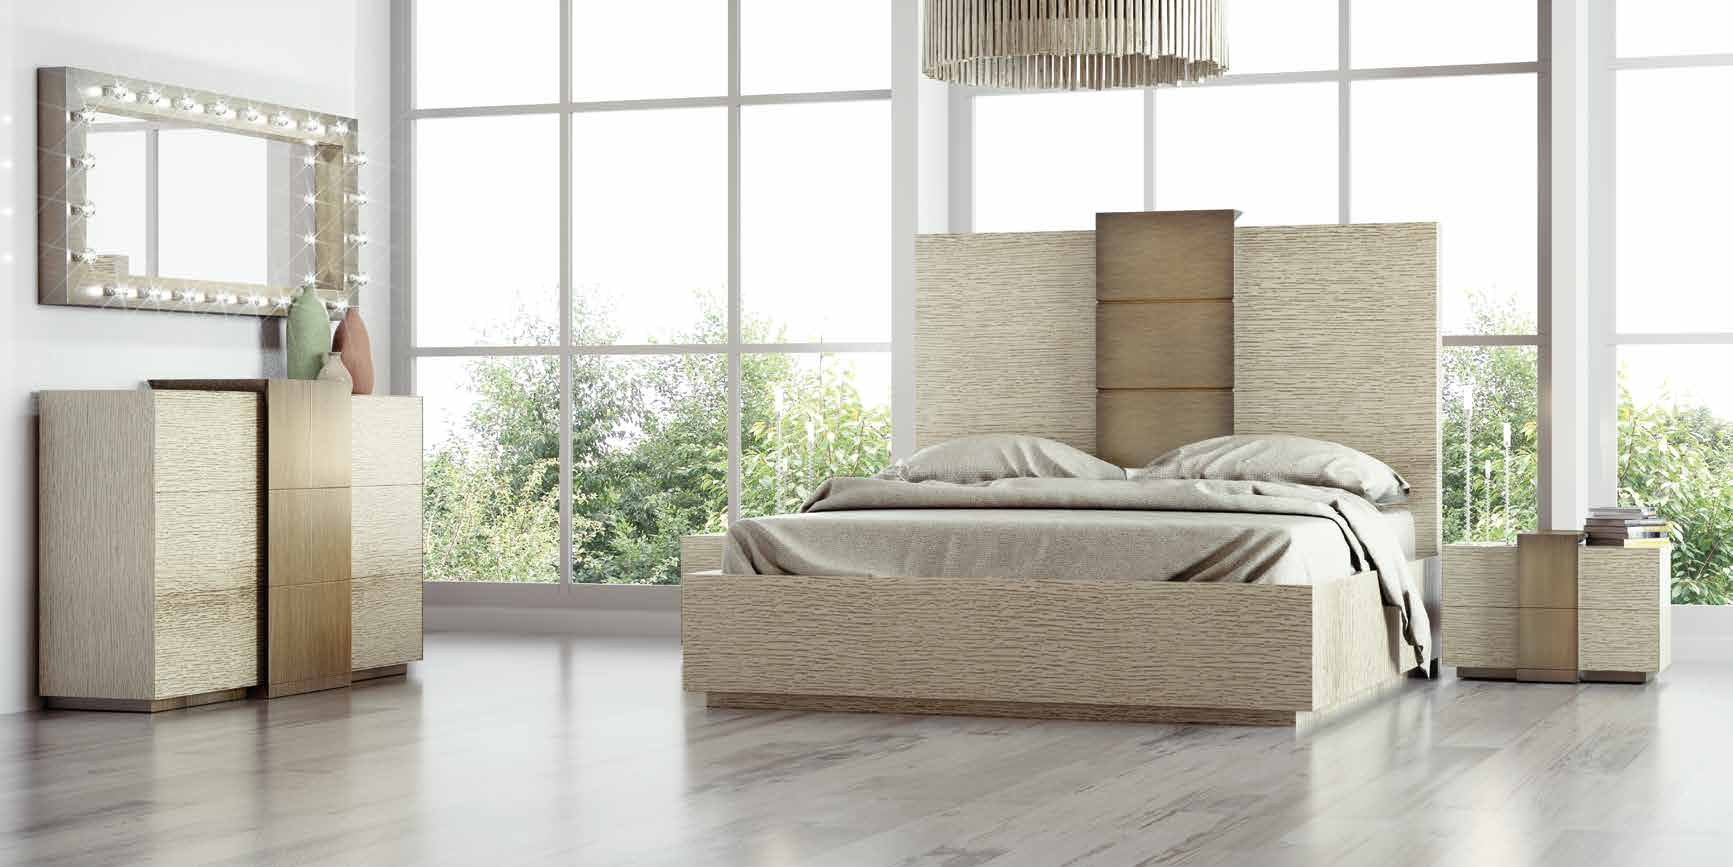 CATALOGO-KIU-FRANCO-FURNITURE-123